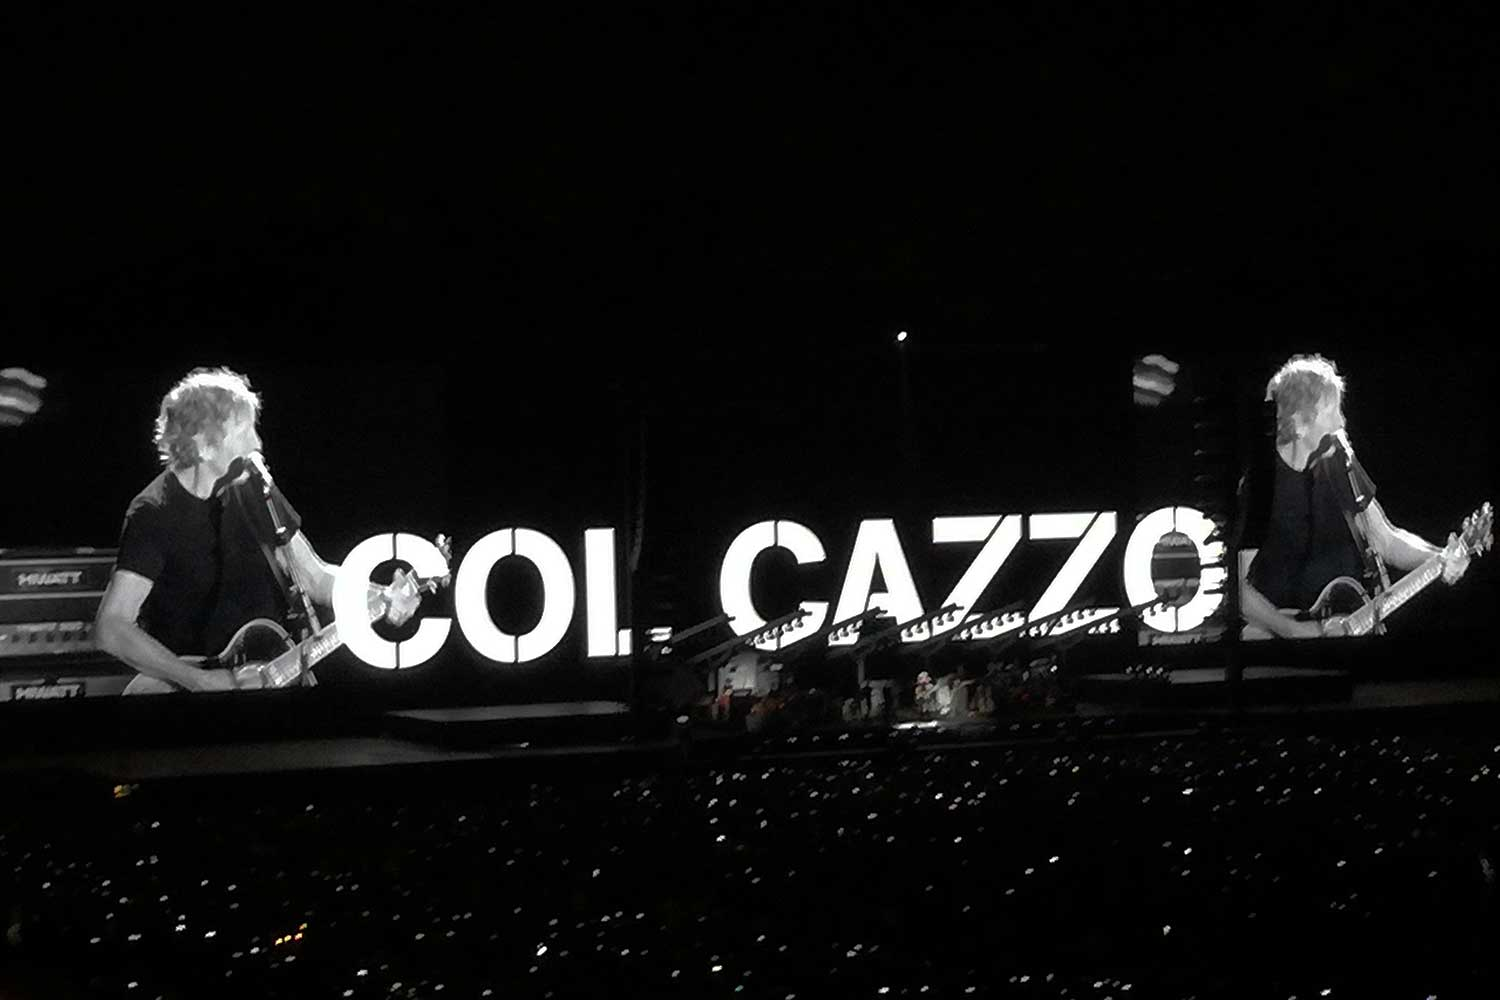 roger waters col cazzo